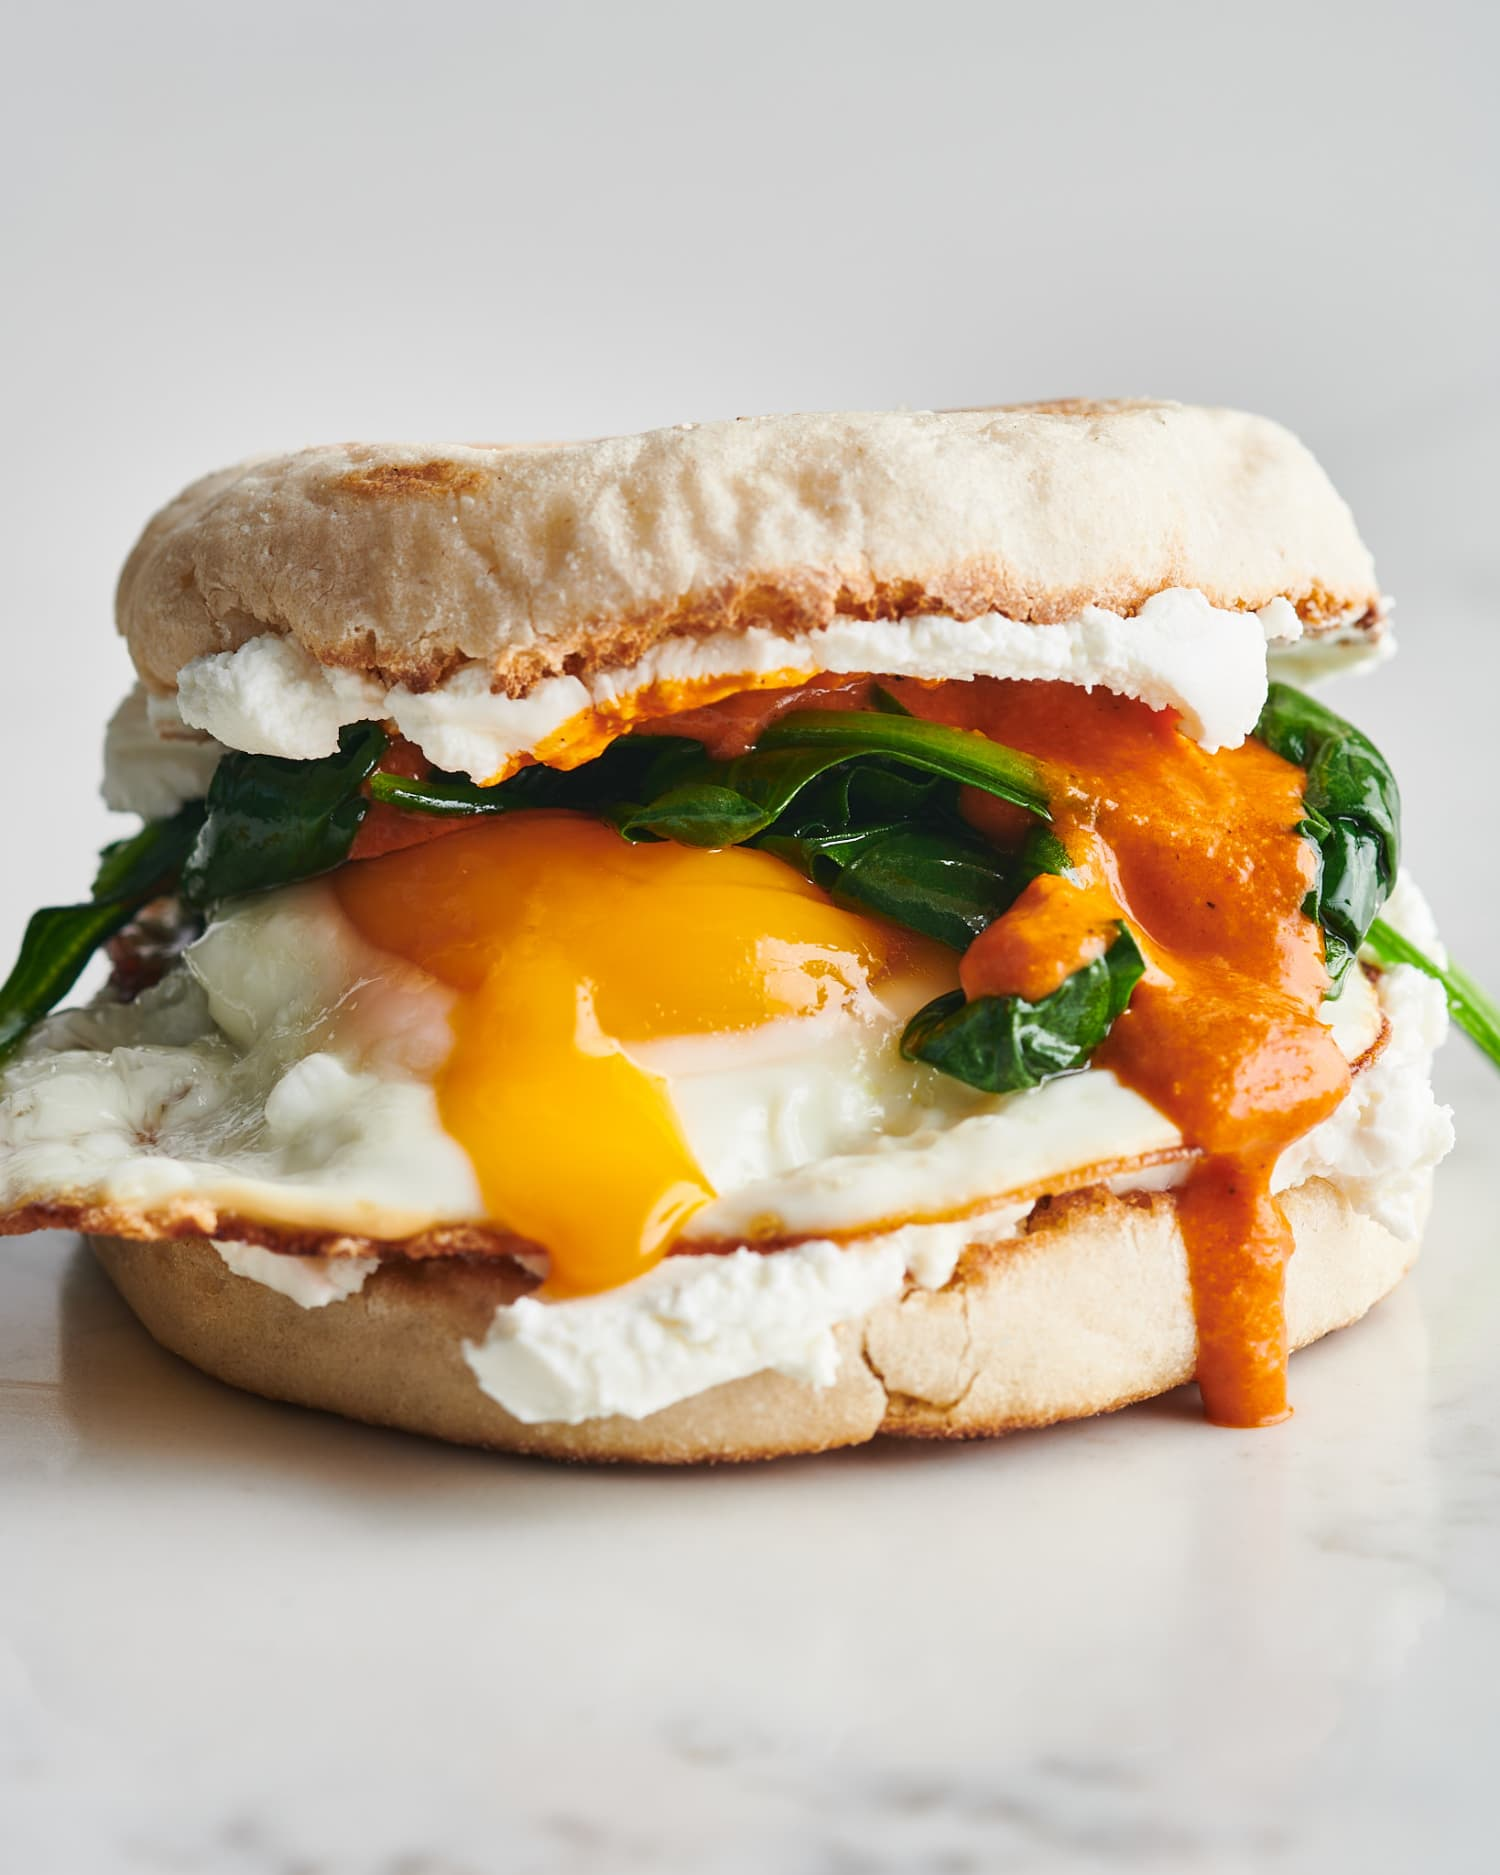 I Can't Get Enough of This Vegetarian Breakfast Sandwich